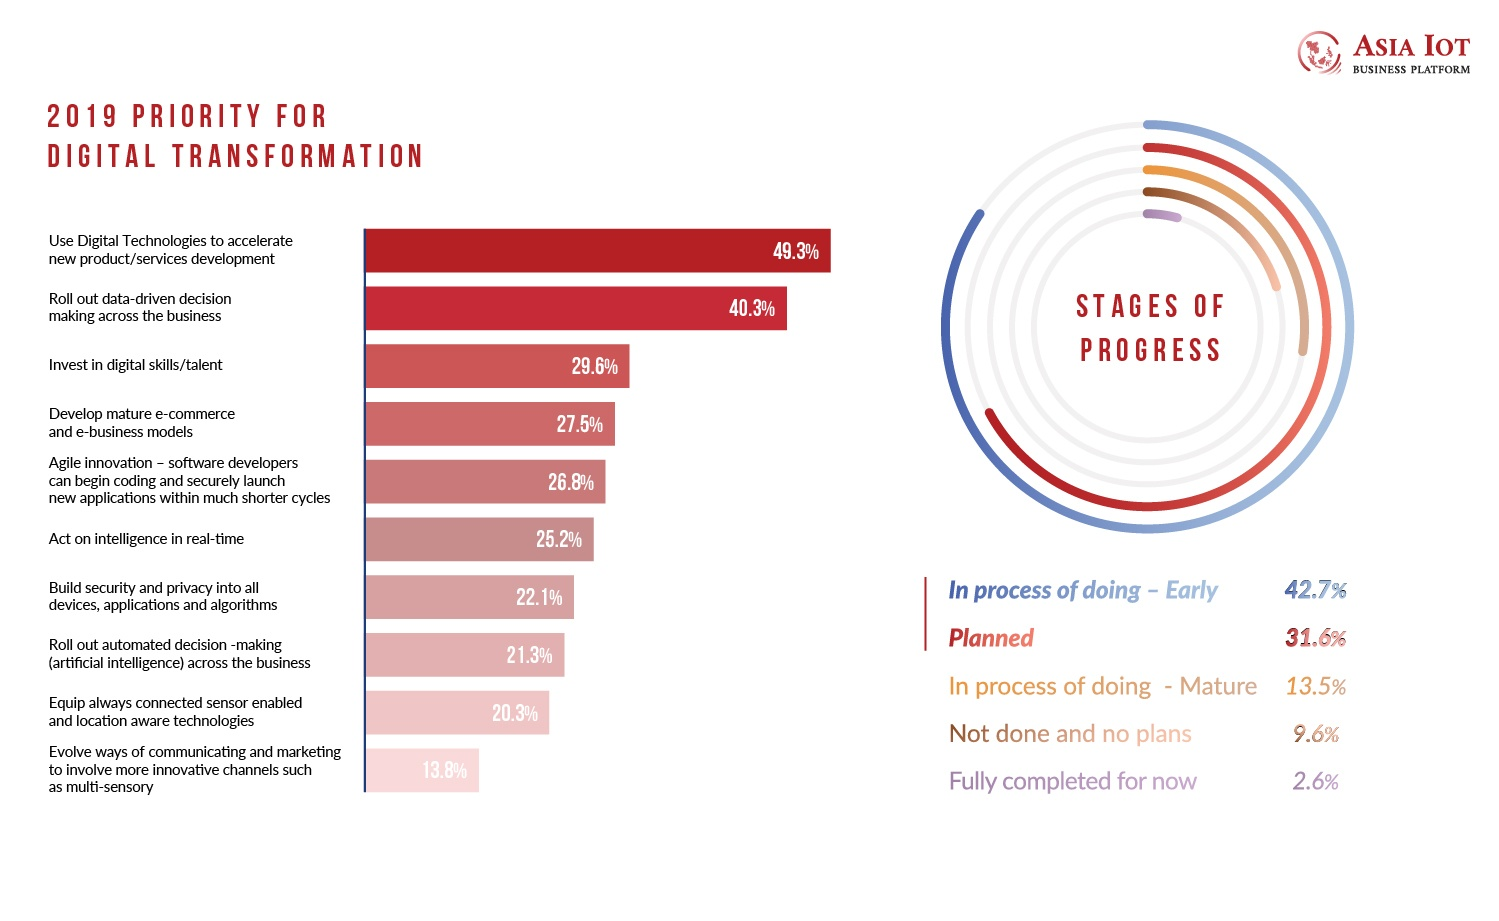 2019 Priority for Digital Transformation - Stages of Investment